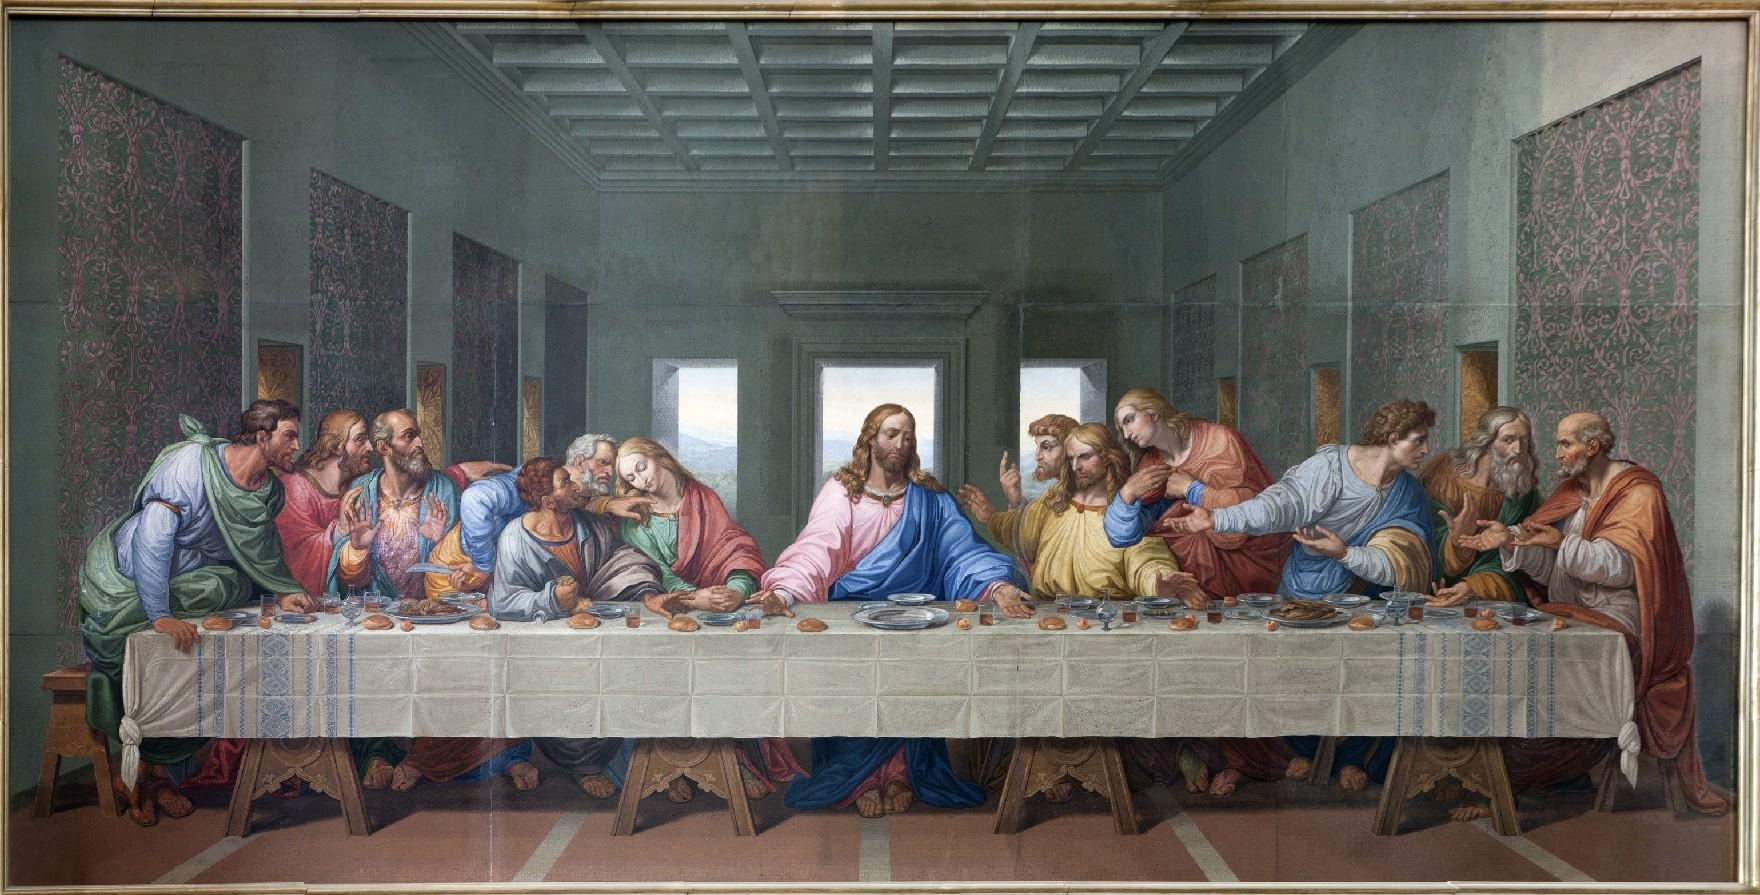 The Last Supper With Regard To The Last Supper Wall Art (Image 20 of 20 & 20 Ideas of The Last Supper Wall Art | Wall Art Ideas